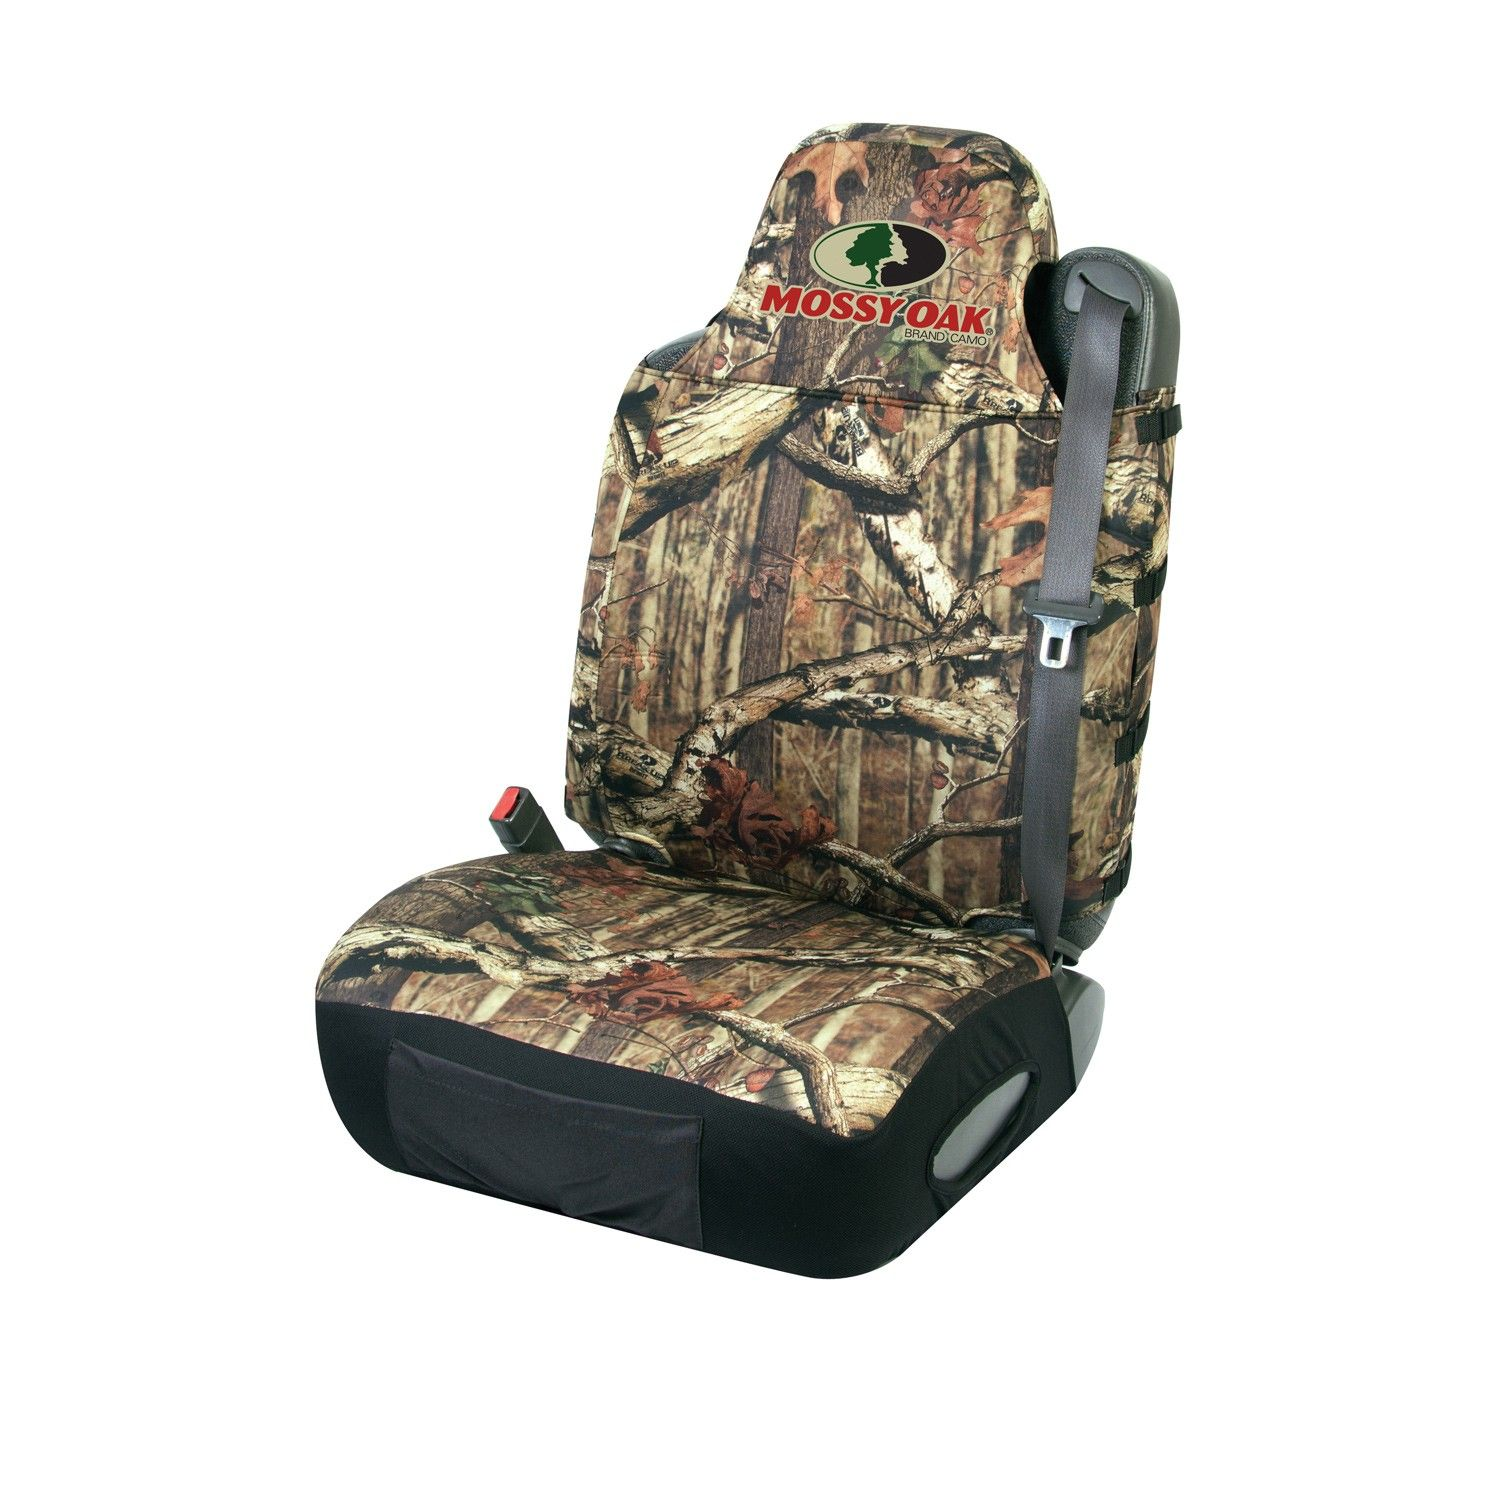 Sitzbezüge Auto Camouflage Mossy Oak Seat Cover We Just Got These His And Hers Mine